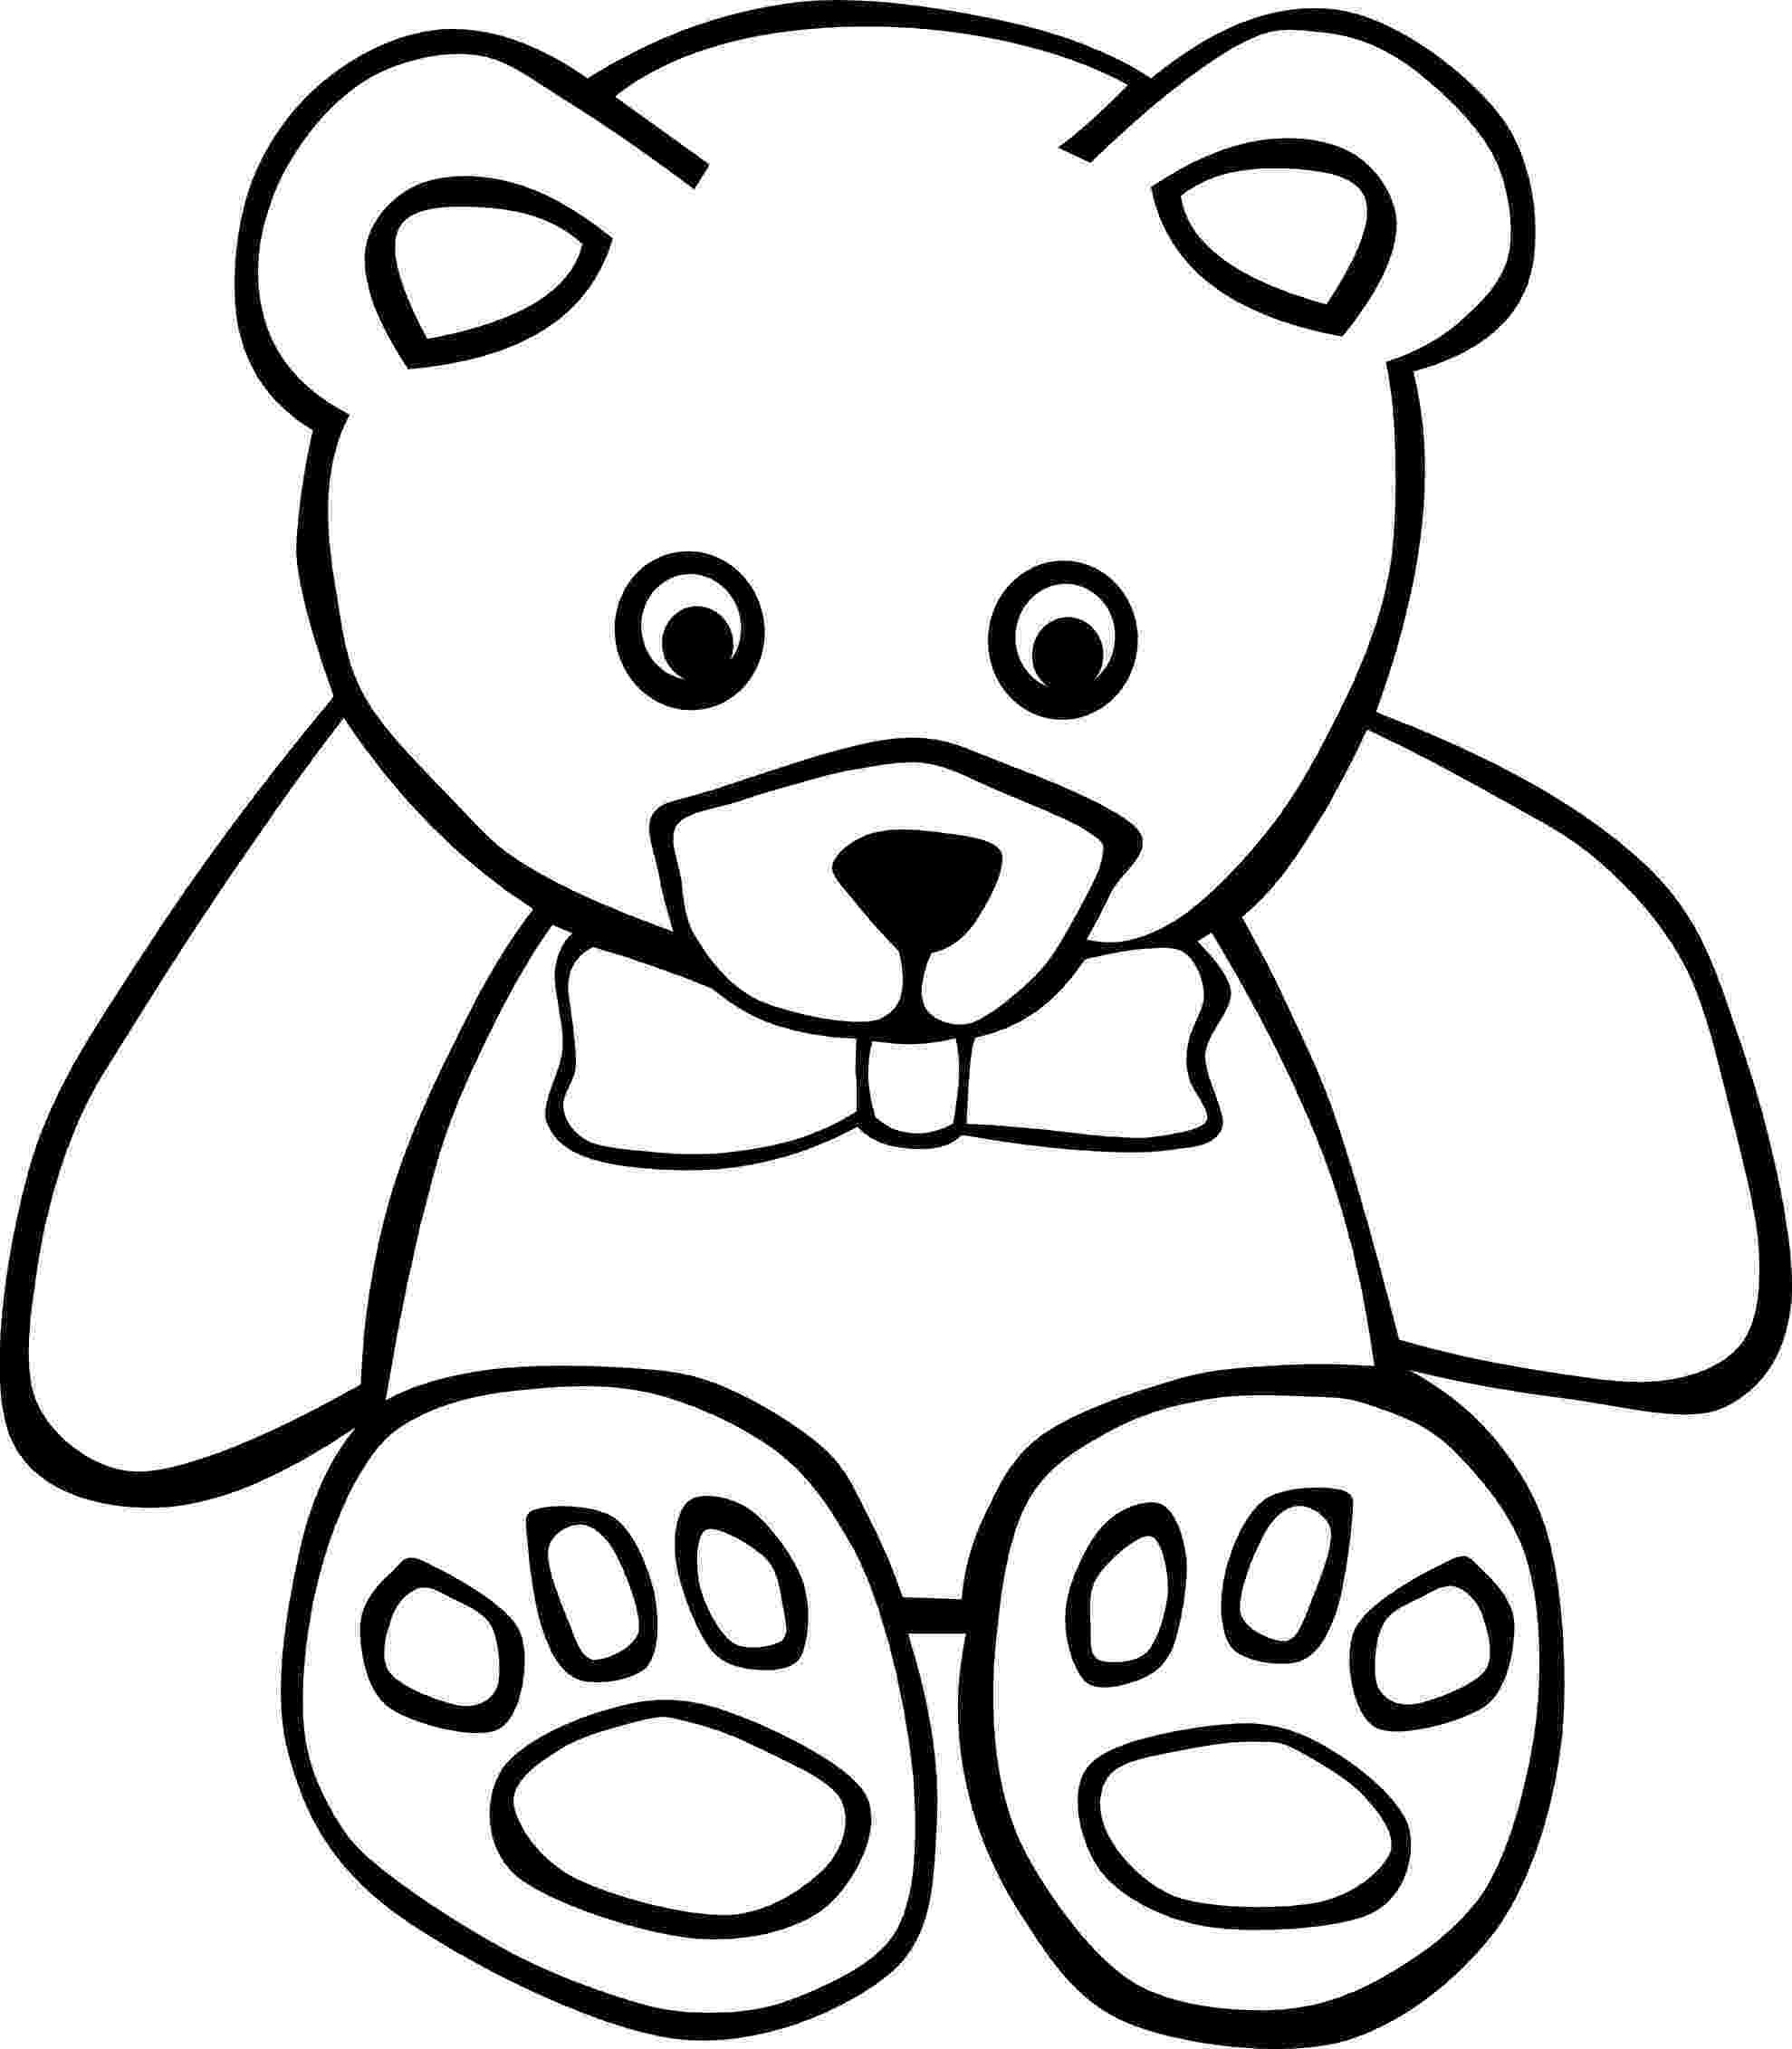 colouring pages of teddy bear free printable teddy bear coloring pages for kids pages teddy colouring of bear